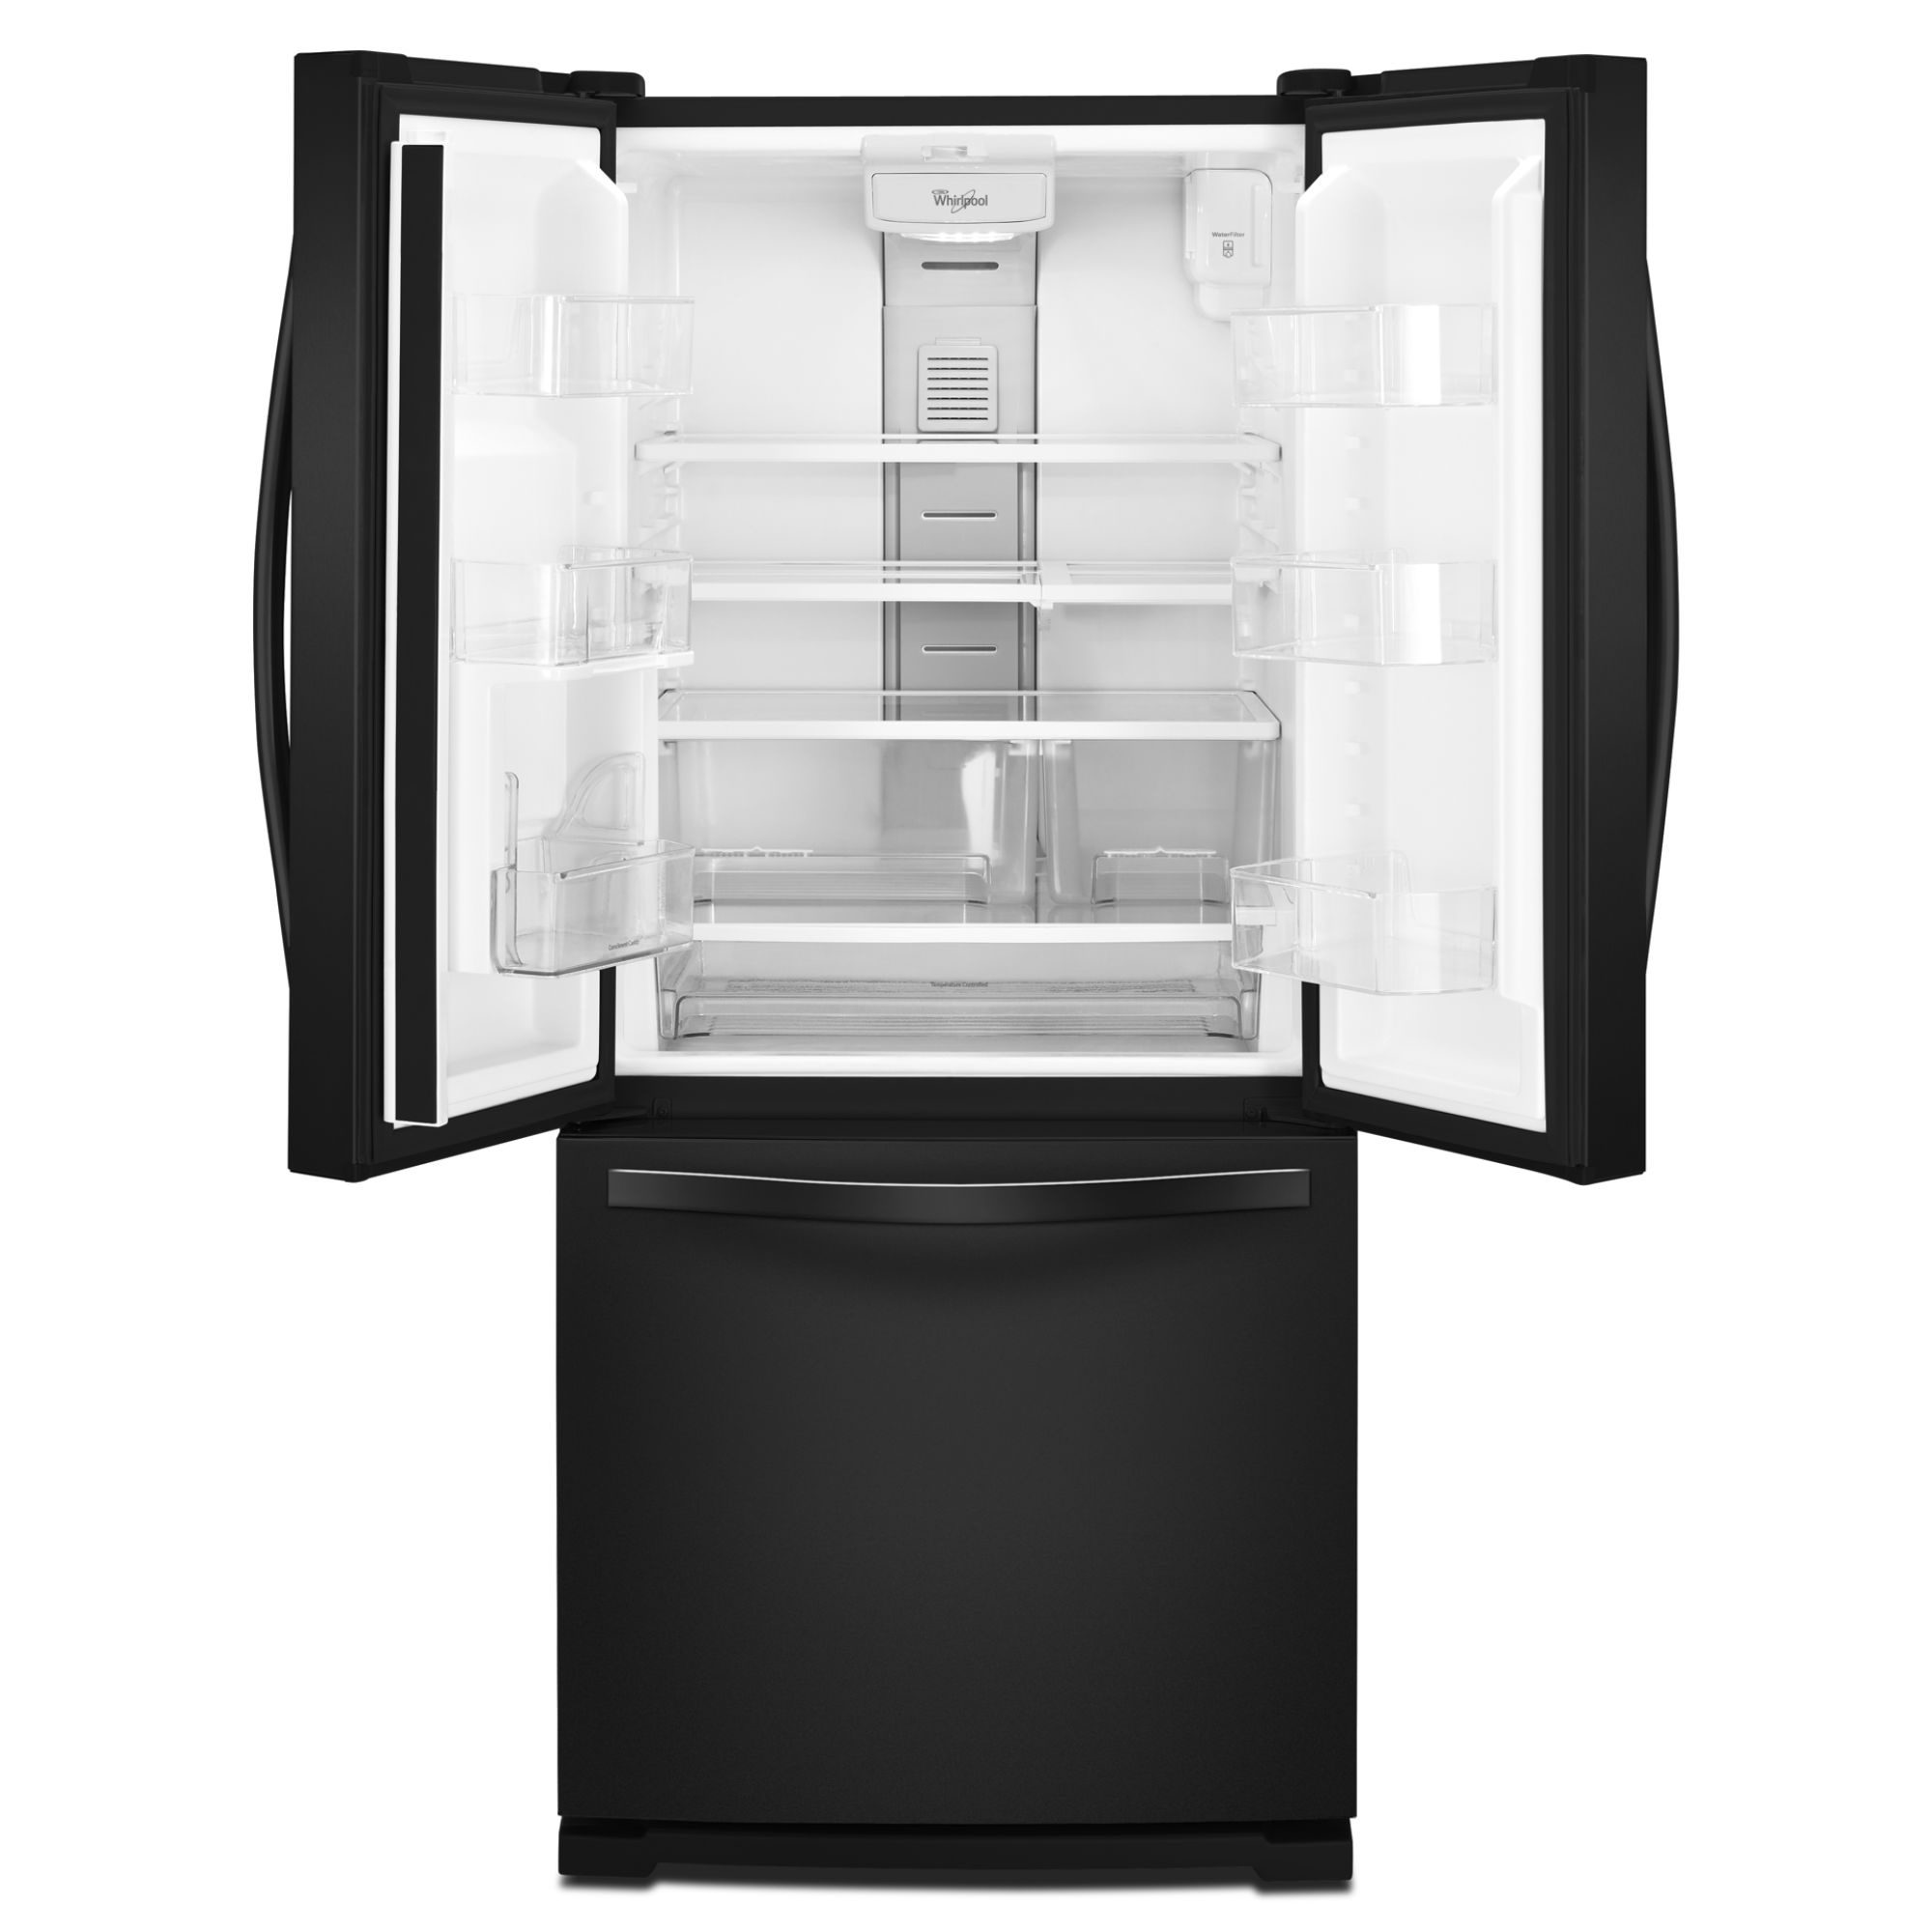 Whirlpool 19.6 cu. ft. French Door Refrigerator w/ Exterior Dispenser - Black